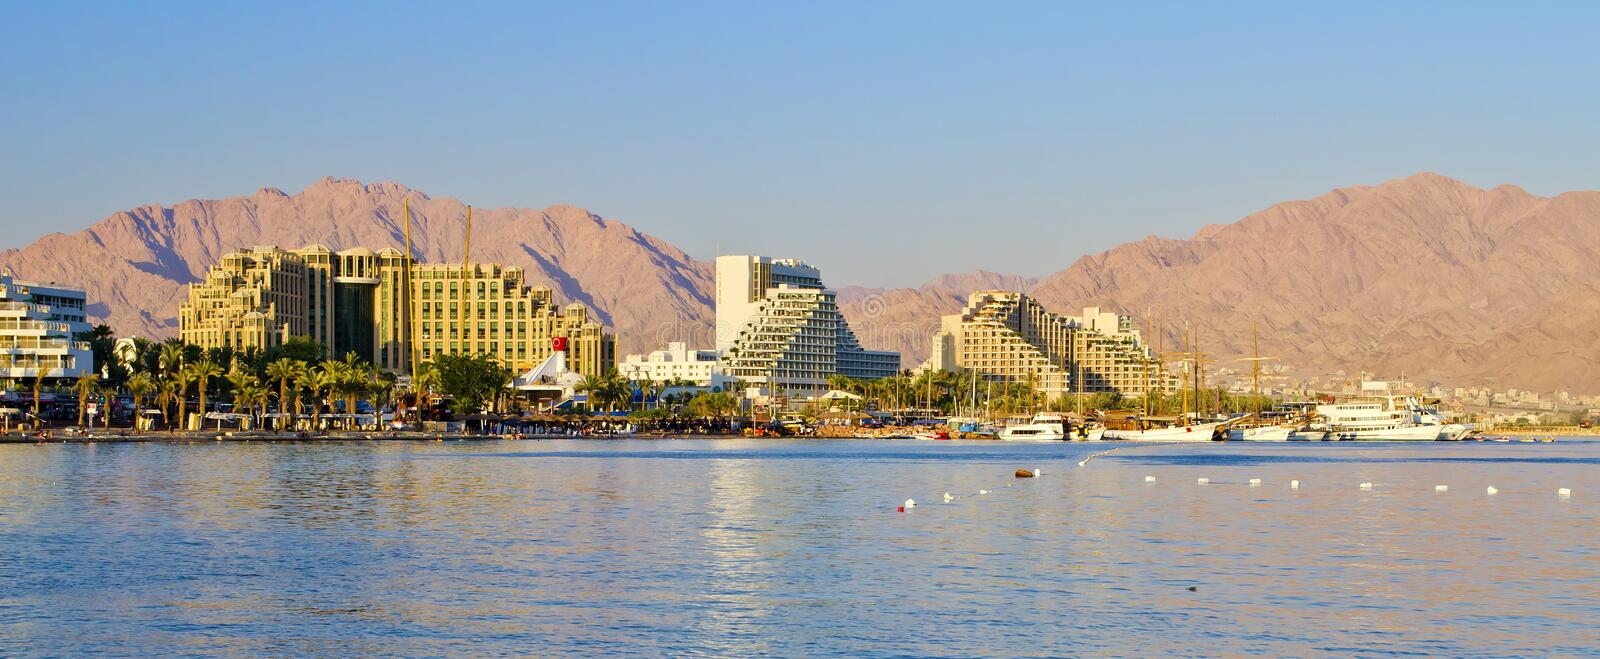 Panoramic view on northern beach of Eilat, Israel. Eilat is a famous resort and recreation town located on the Red Sea, Israel stock images